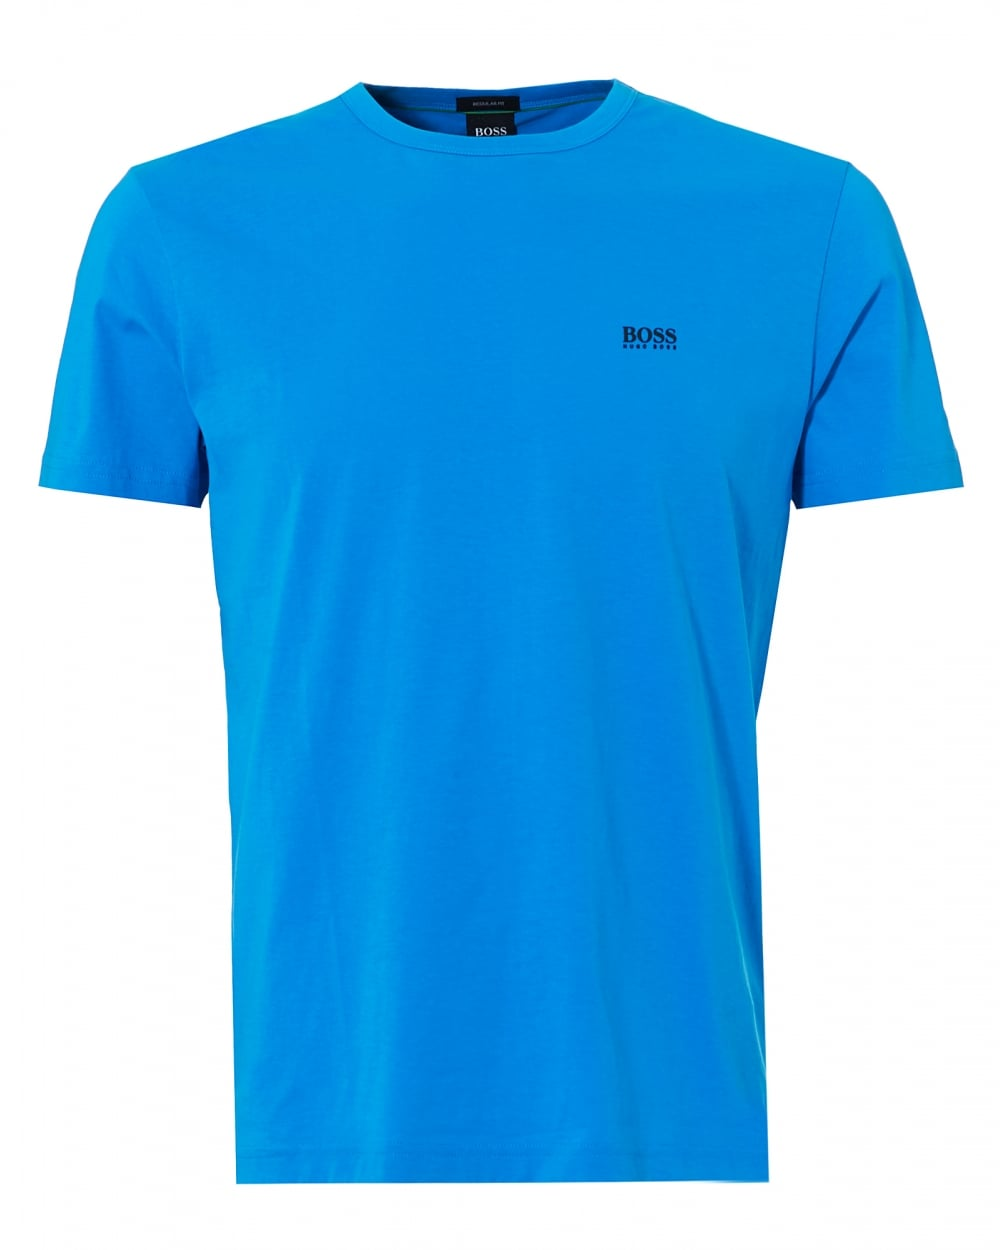 Mens Rear And Chest Logo T-Shirt, Crew Neck Blue Astor Tee